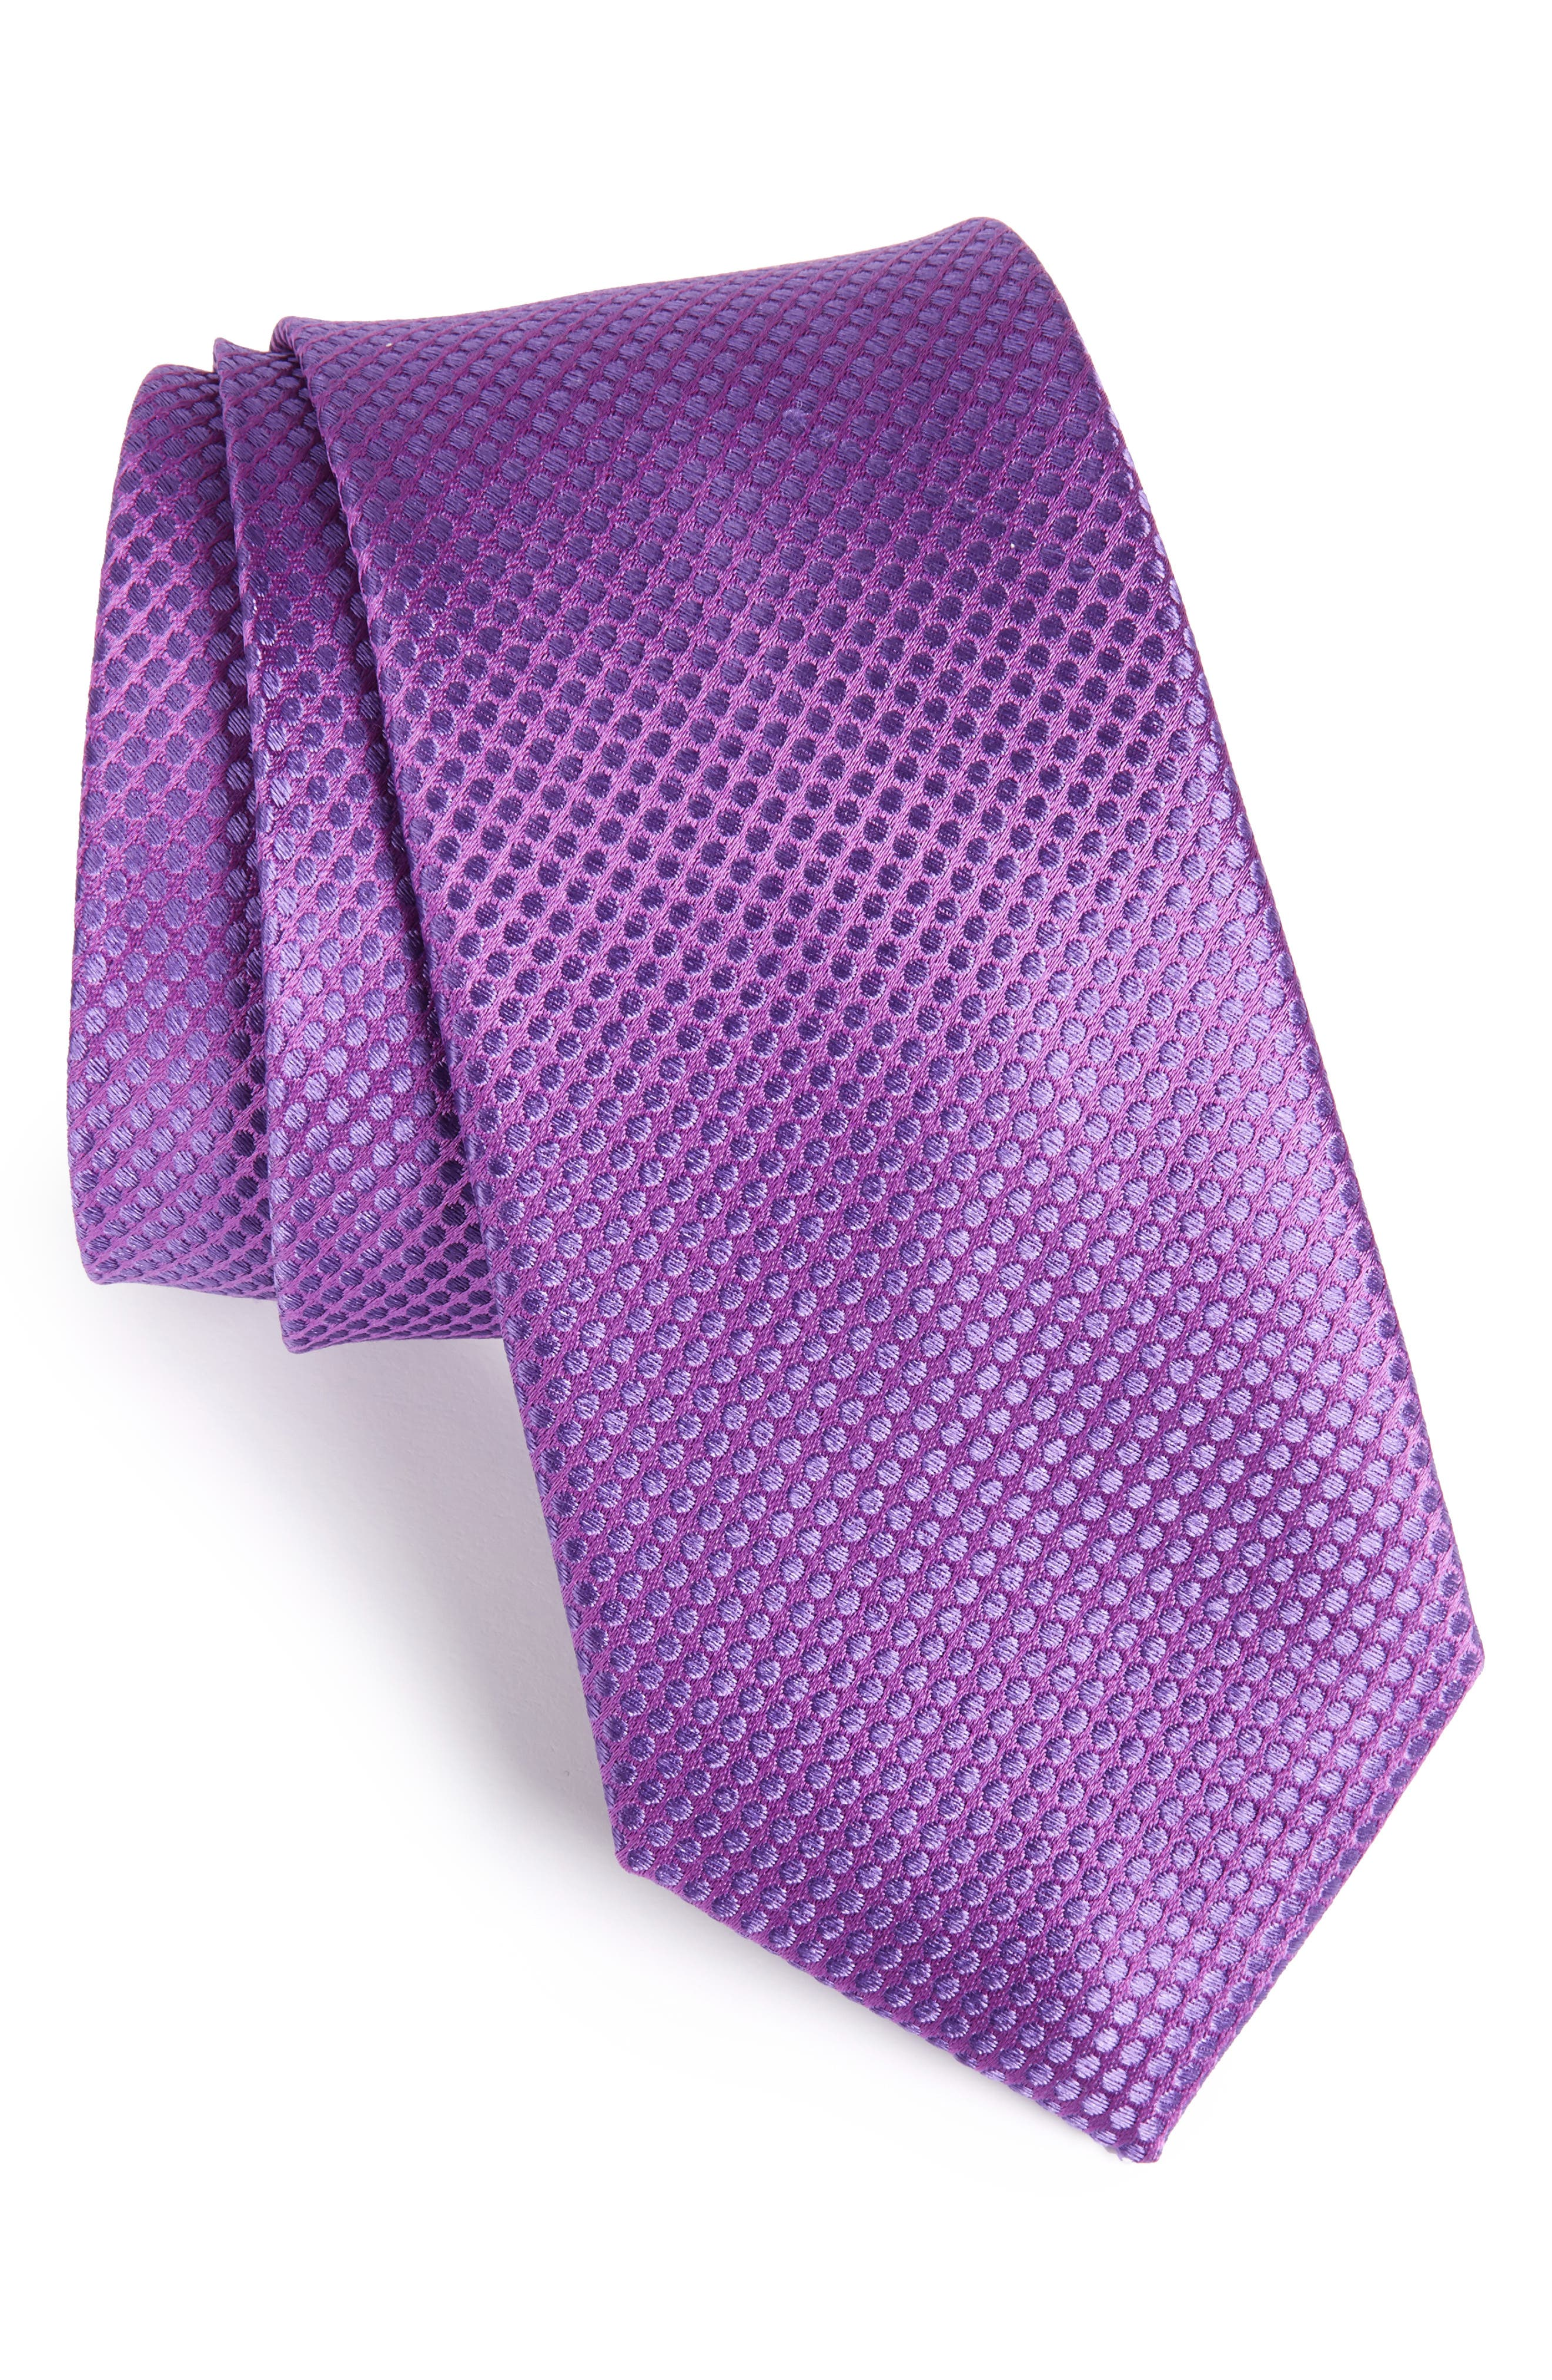 Saturated Dot Silk Tie,                             Main thumbnail 1, color,                             502